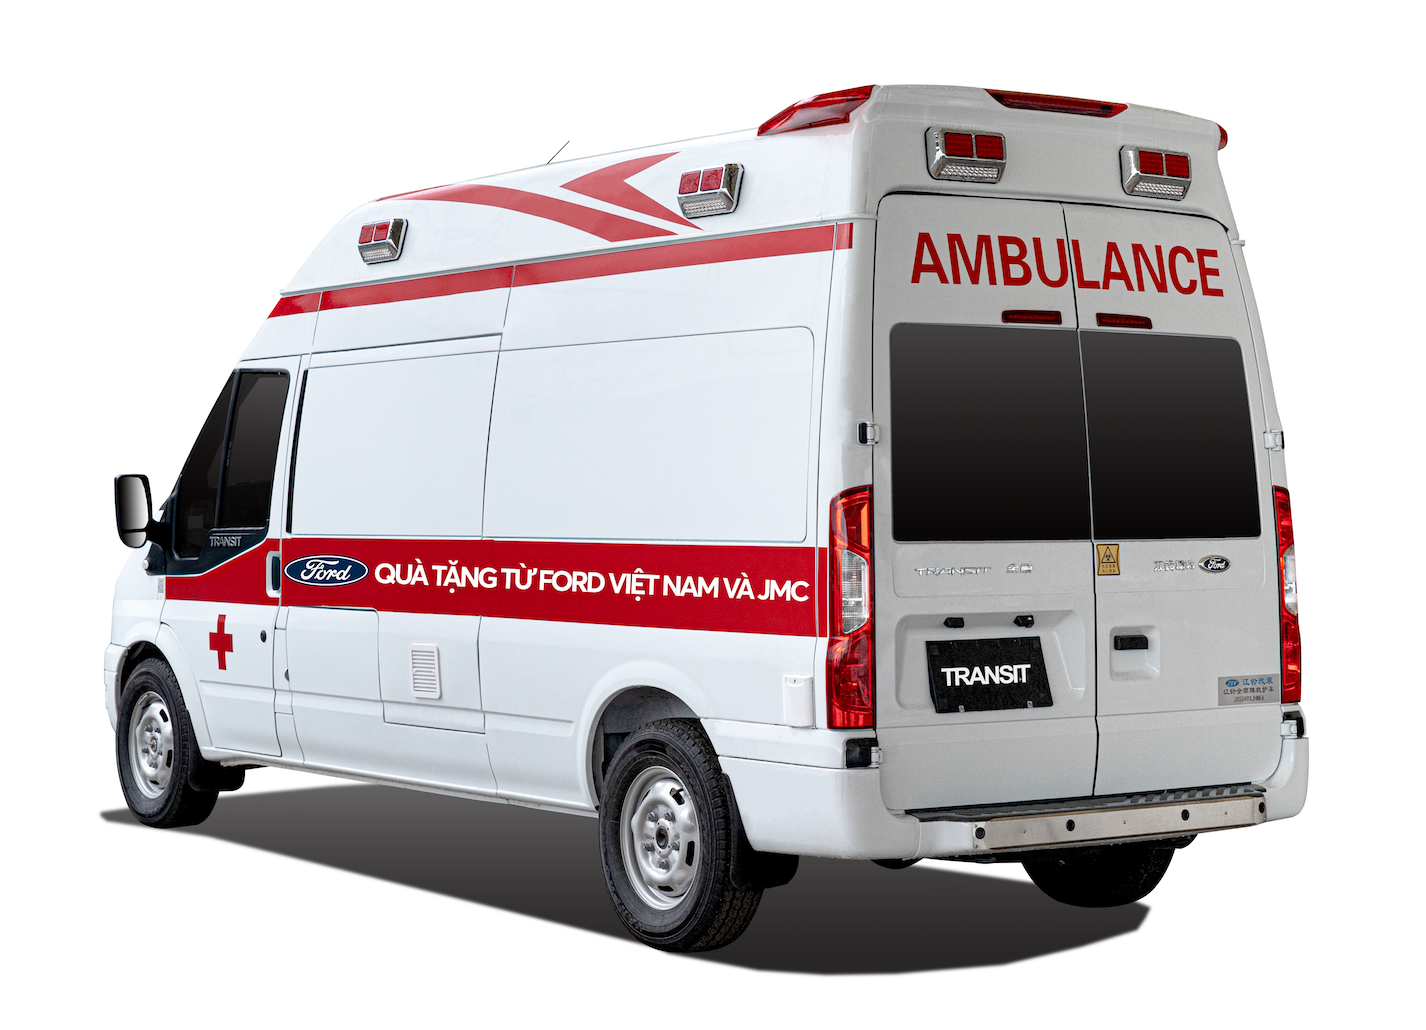 ford-transit-ambulance-4.png